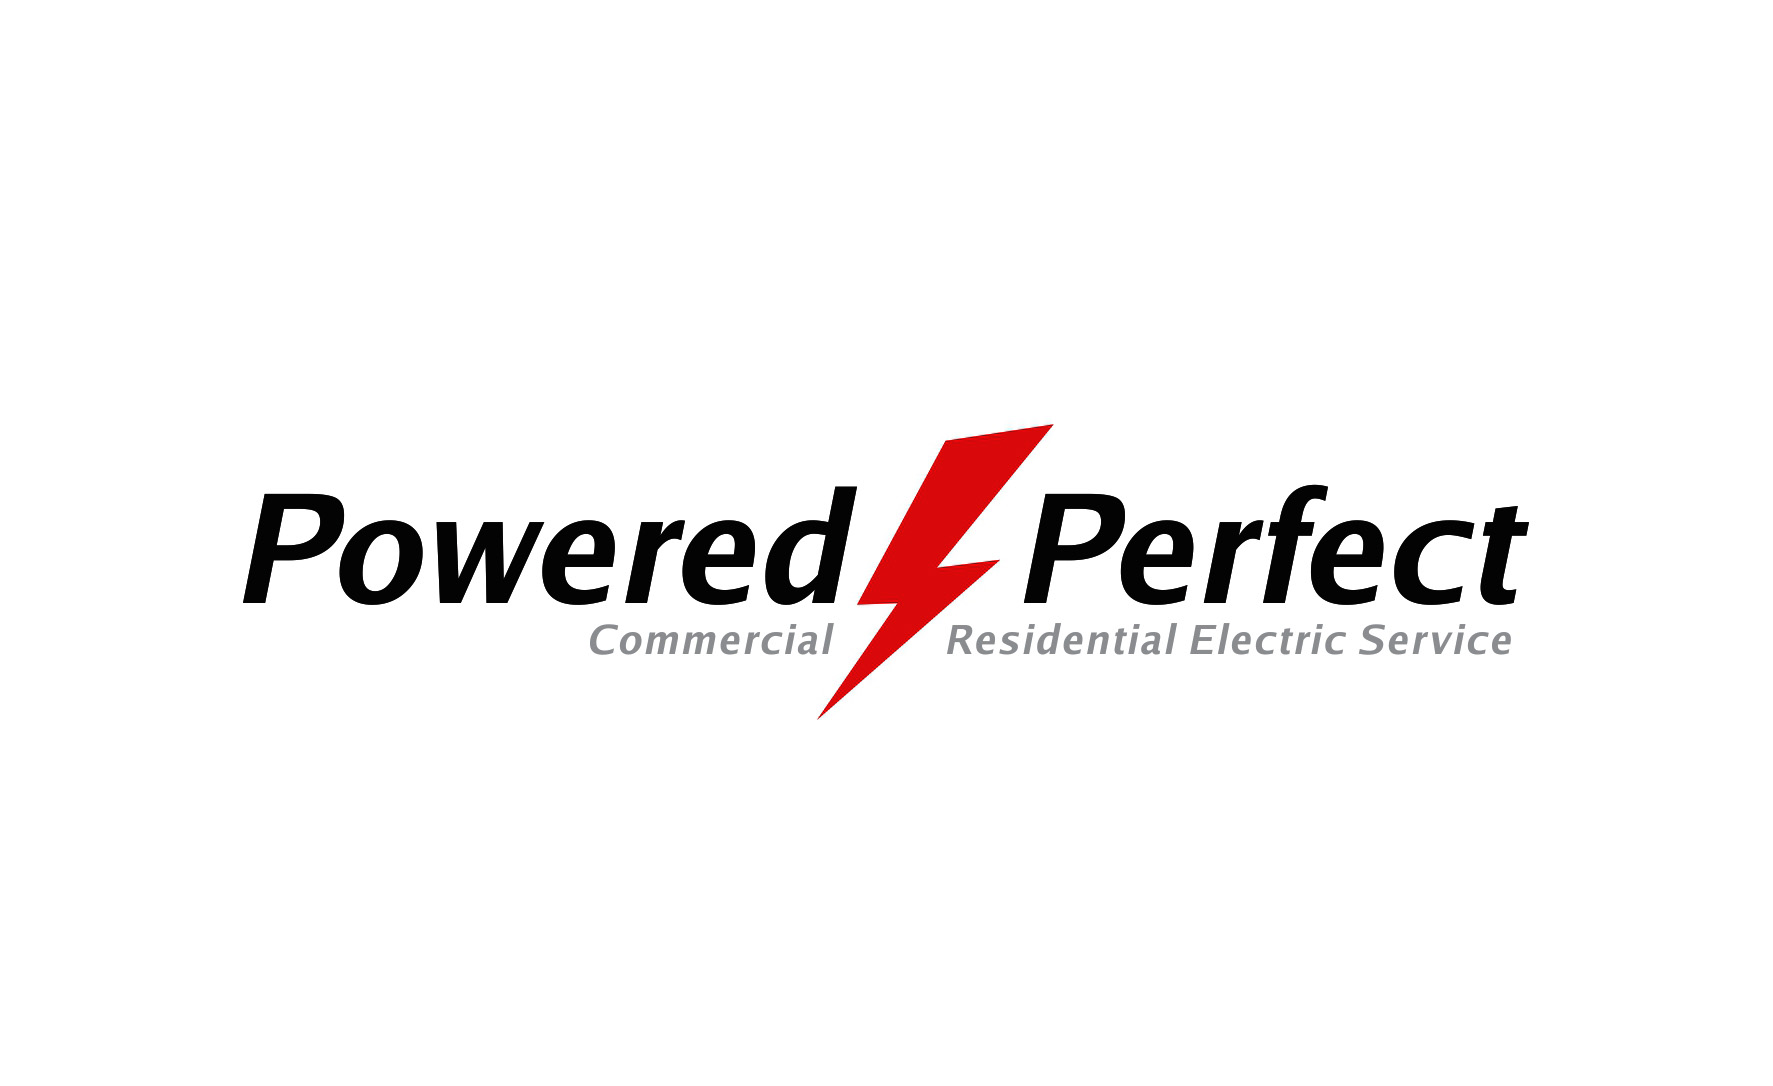 Logo Design by Muhammad Aslam - Entry No. 15 in the Logo Design Contest Captivating Logo Design for Powered Perfect.